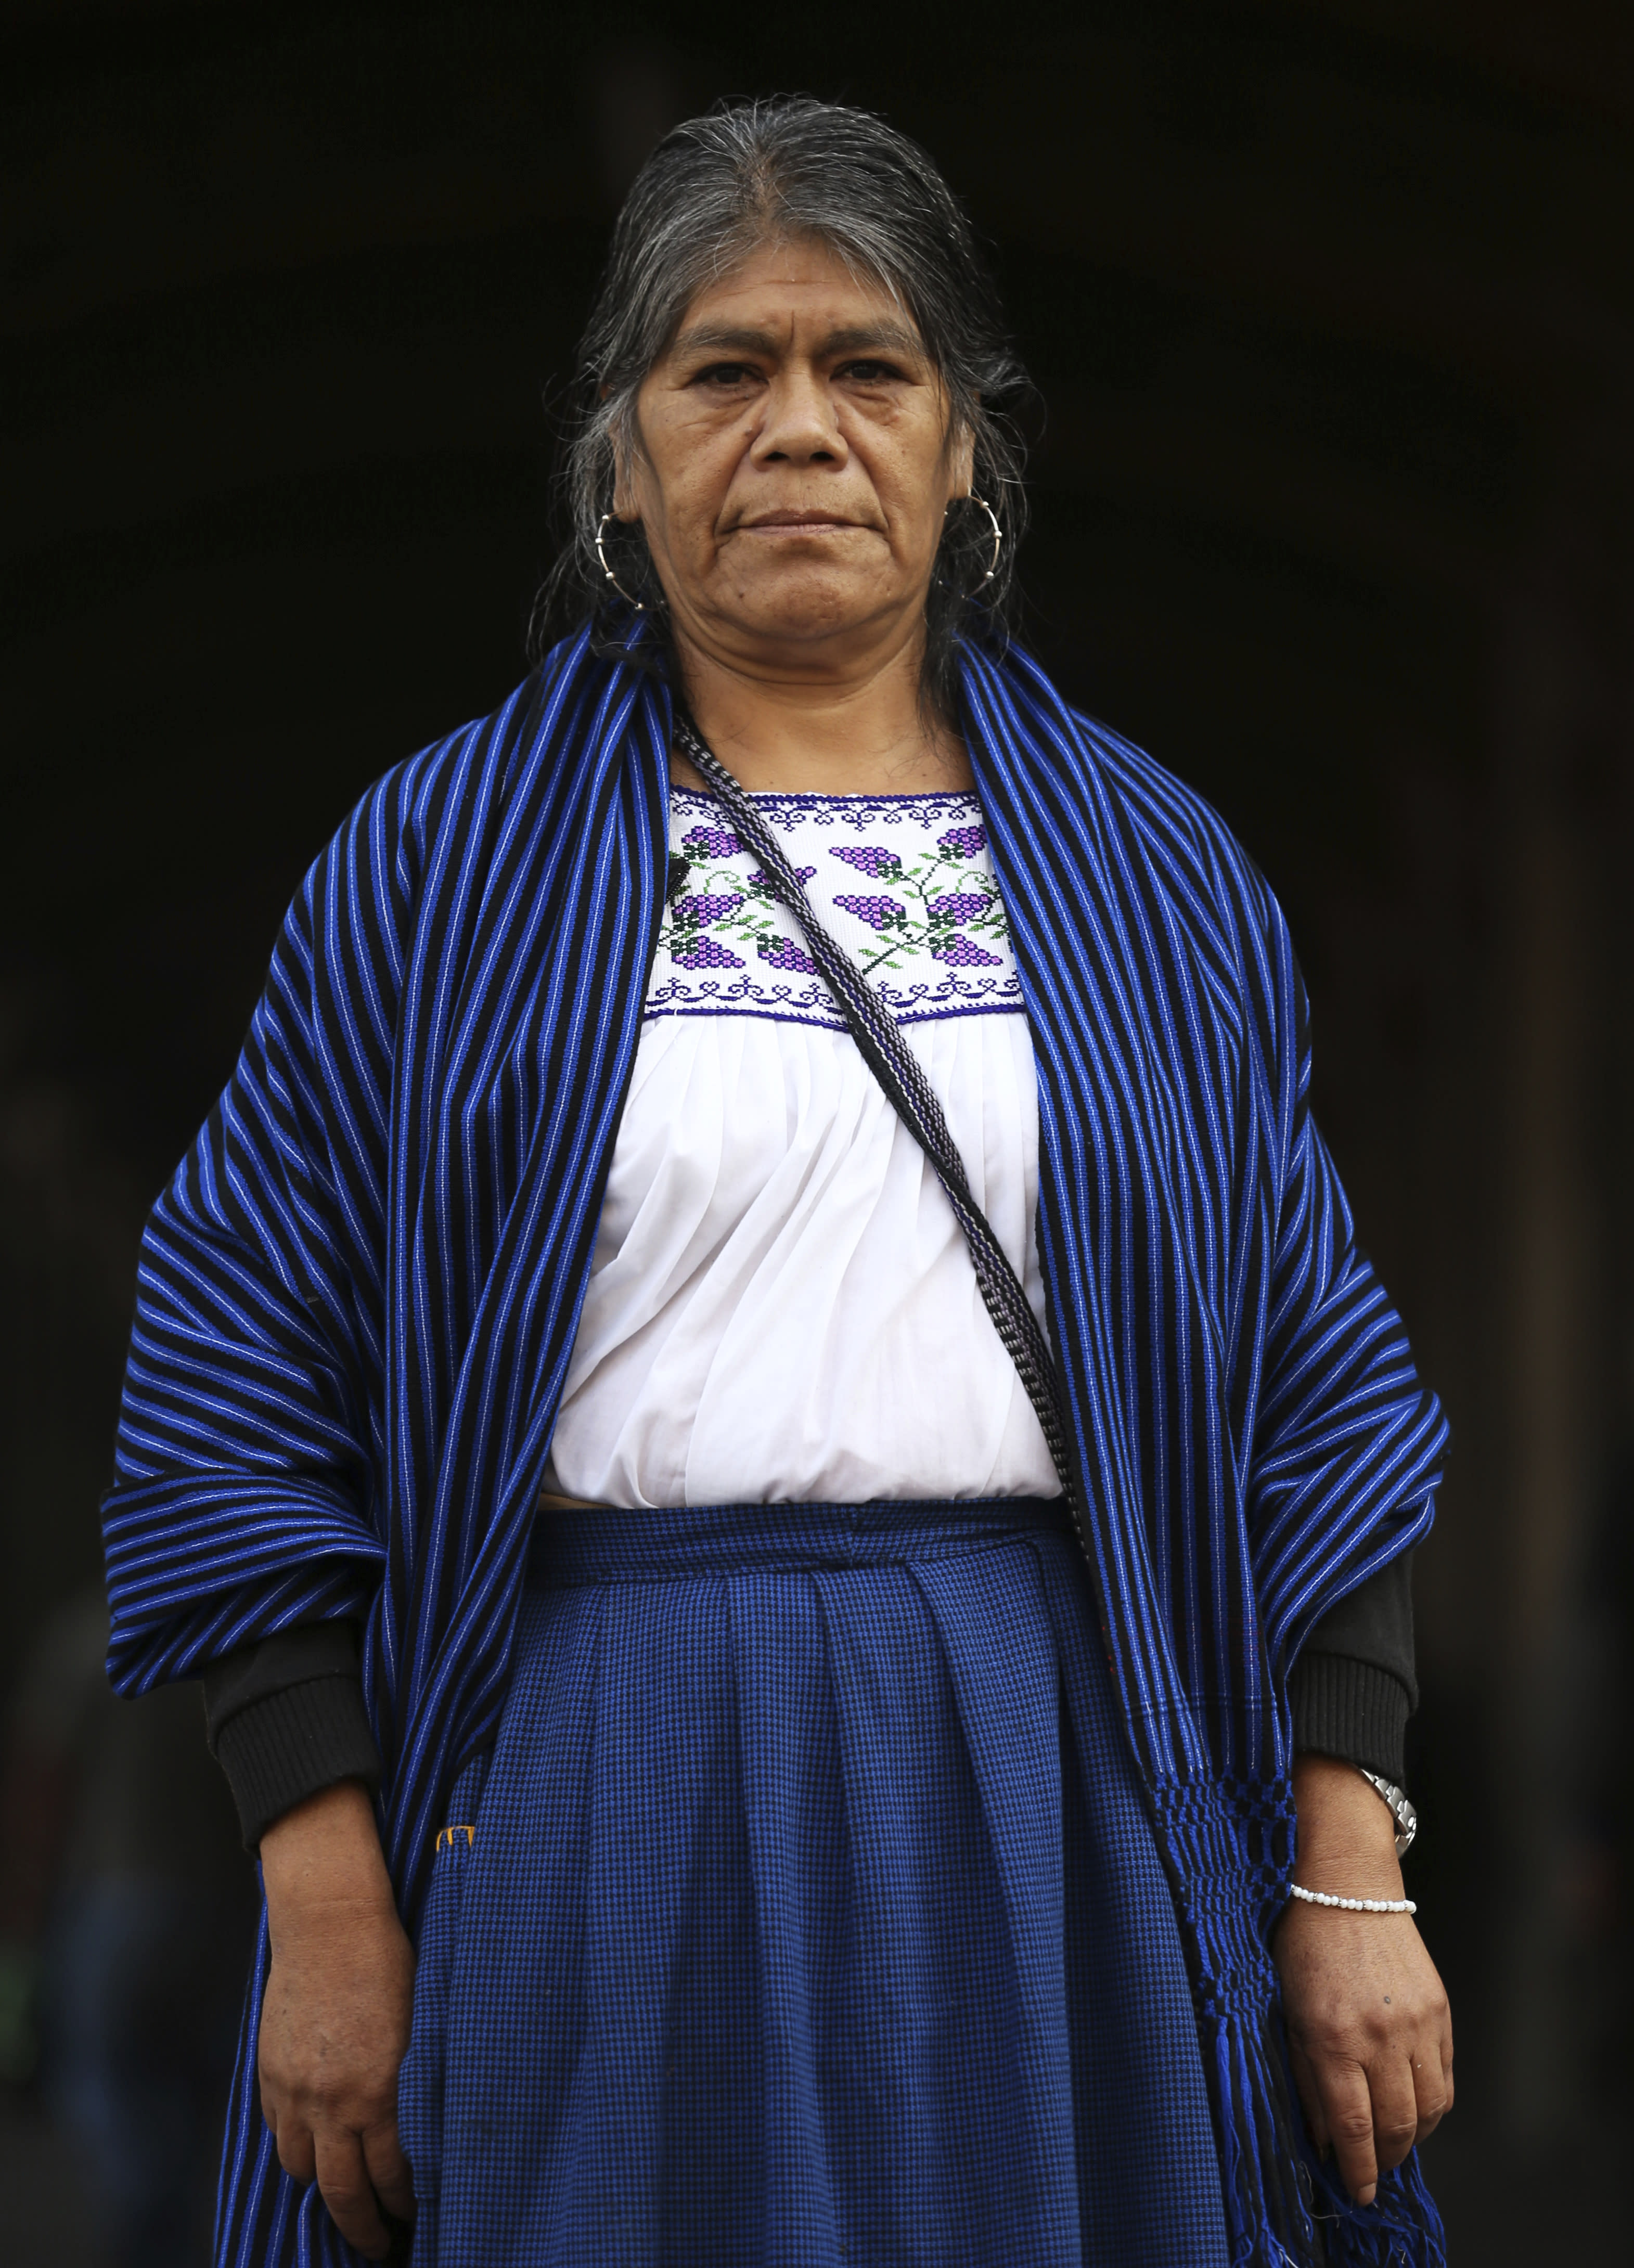 Maria Sara Guzman poses for a photo during an interview in the Zocalo in Mexico City, Friday, Nov. 29, 2019. An artisan from the Purepecha indigenous community of the state of Michoacan, Guzman says she already feels a bit disillusioned with Lopez Obrador. (AP Photo/Marco Ugarte)